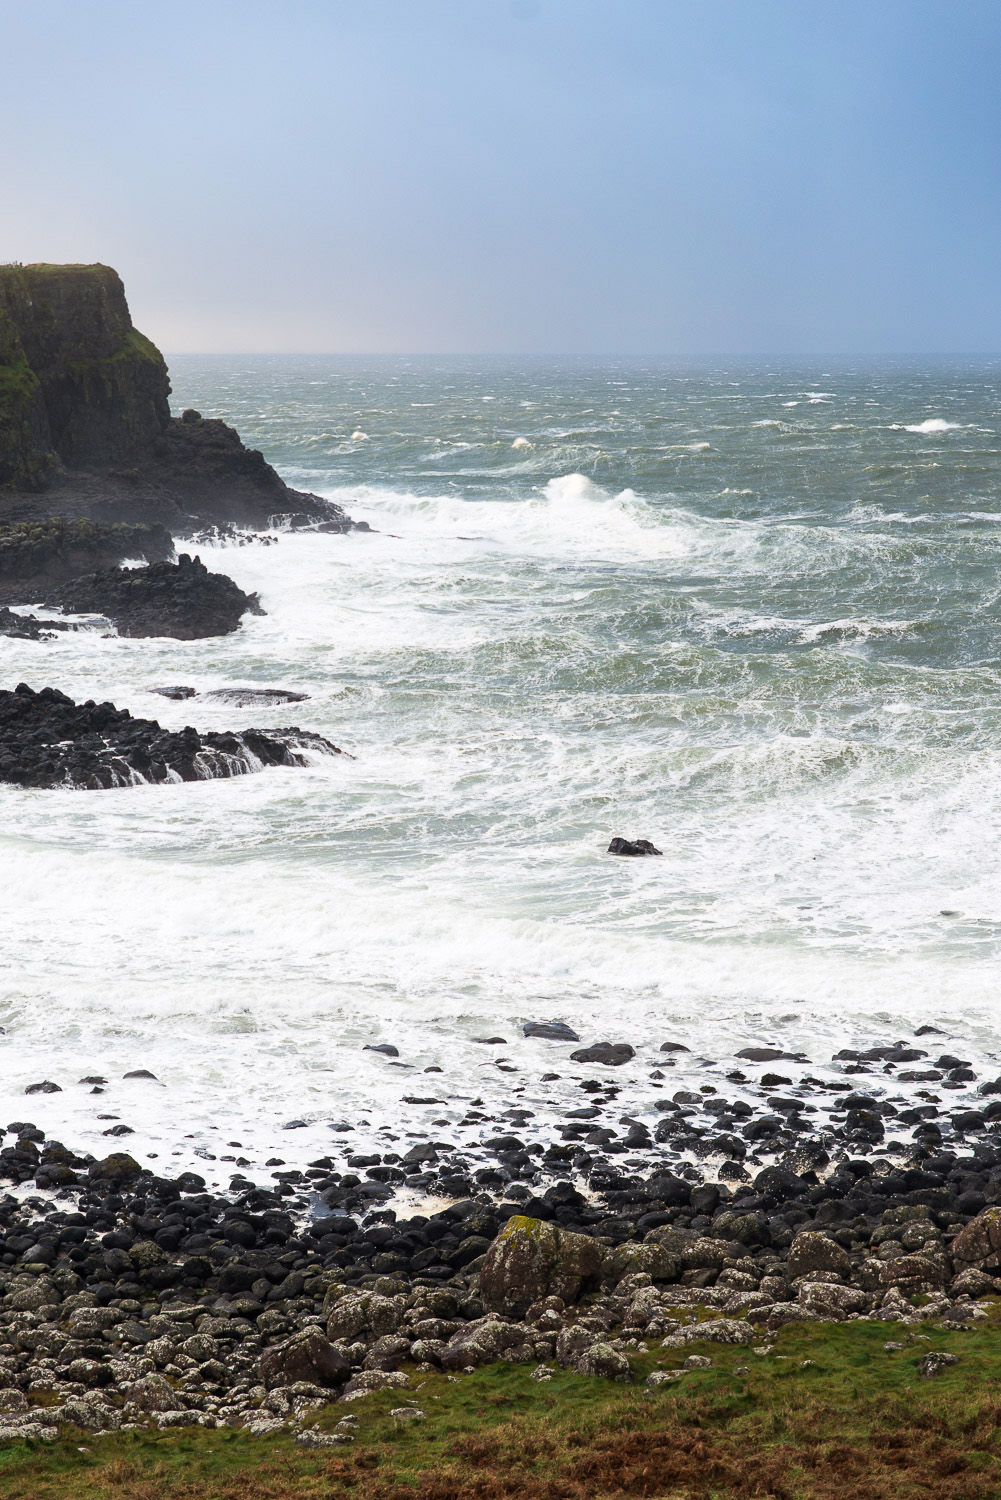 world famous Giant's Causeway, Ireland's first World Heritage Site.